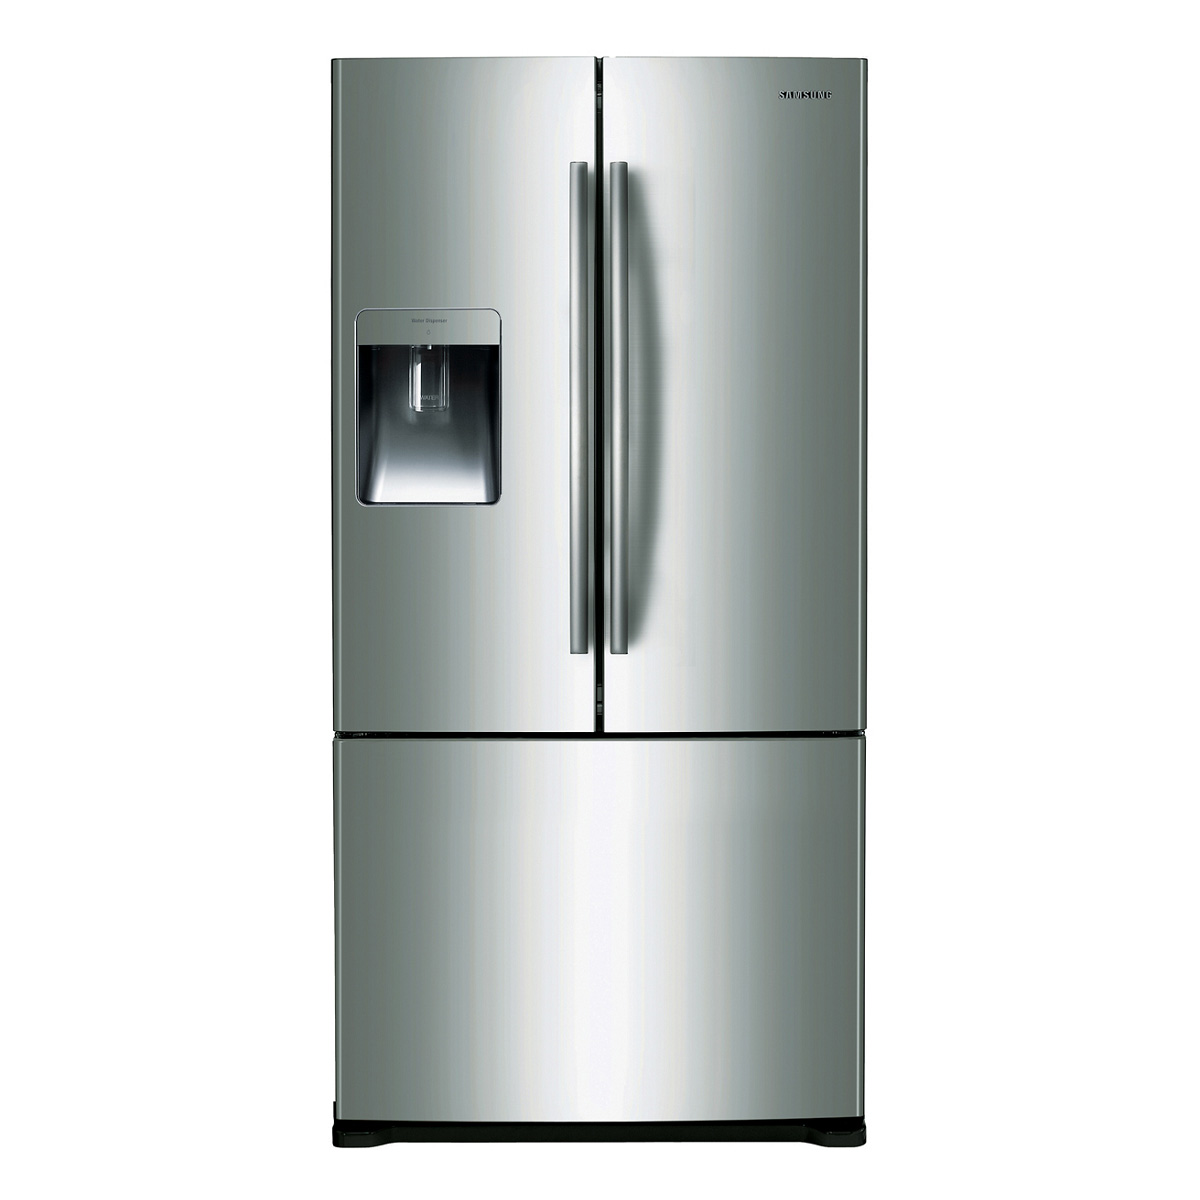 Samsung SRF533DLS 533L French Door Fridge